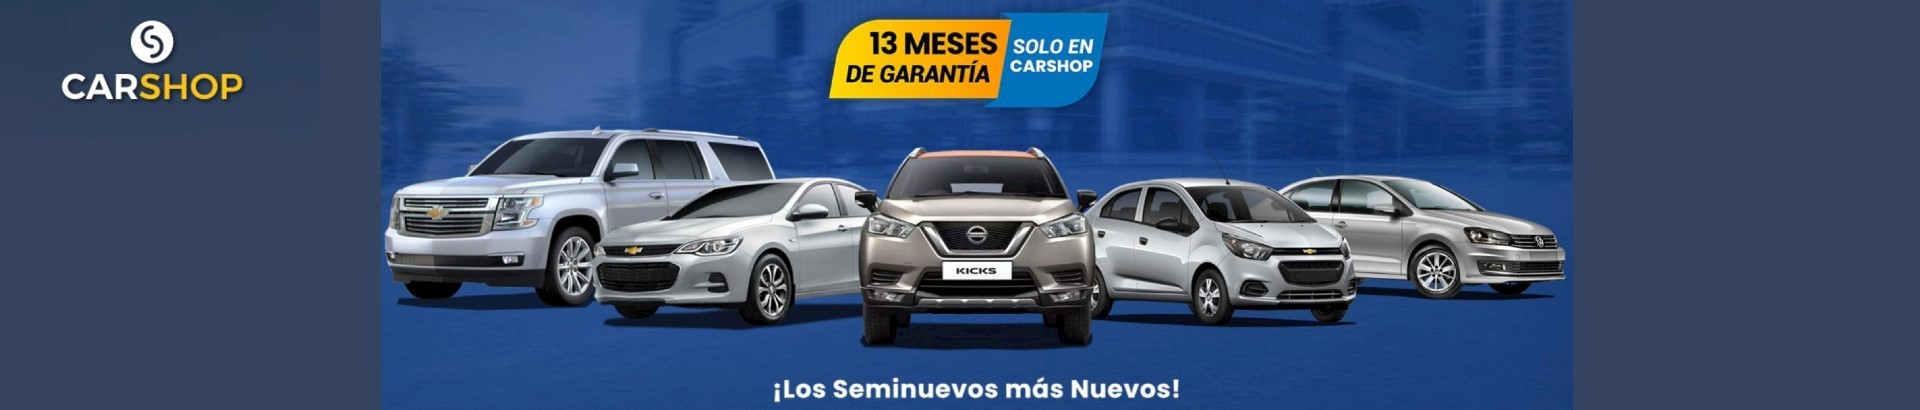 CARSHOP MEXICALI